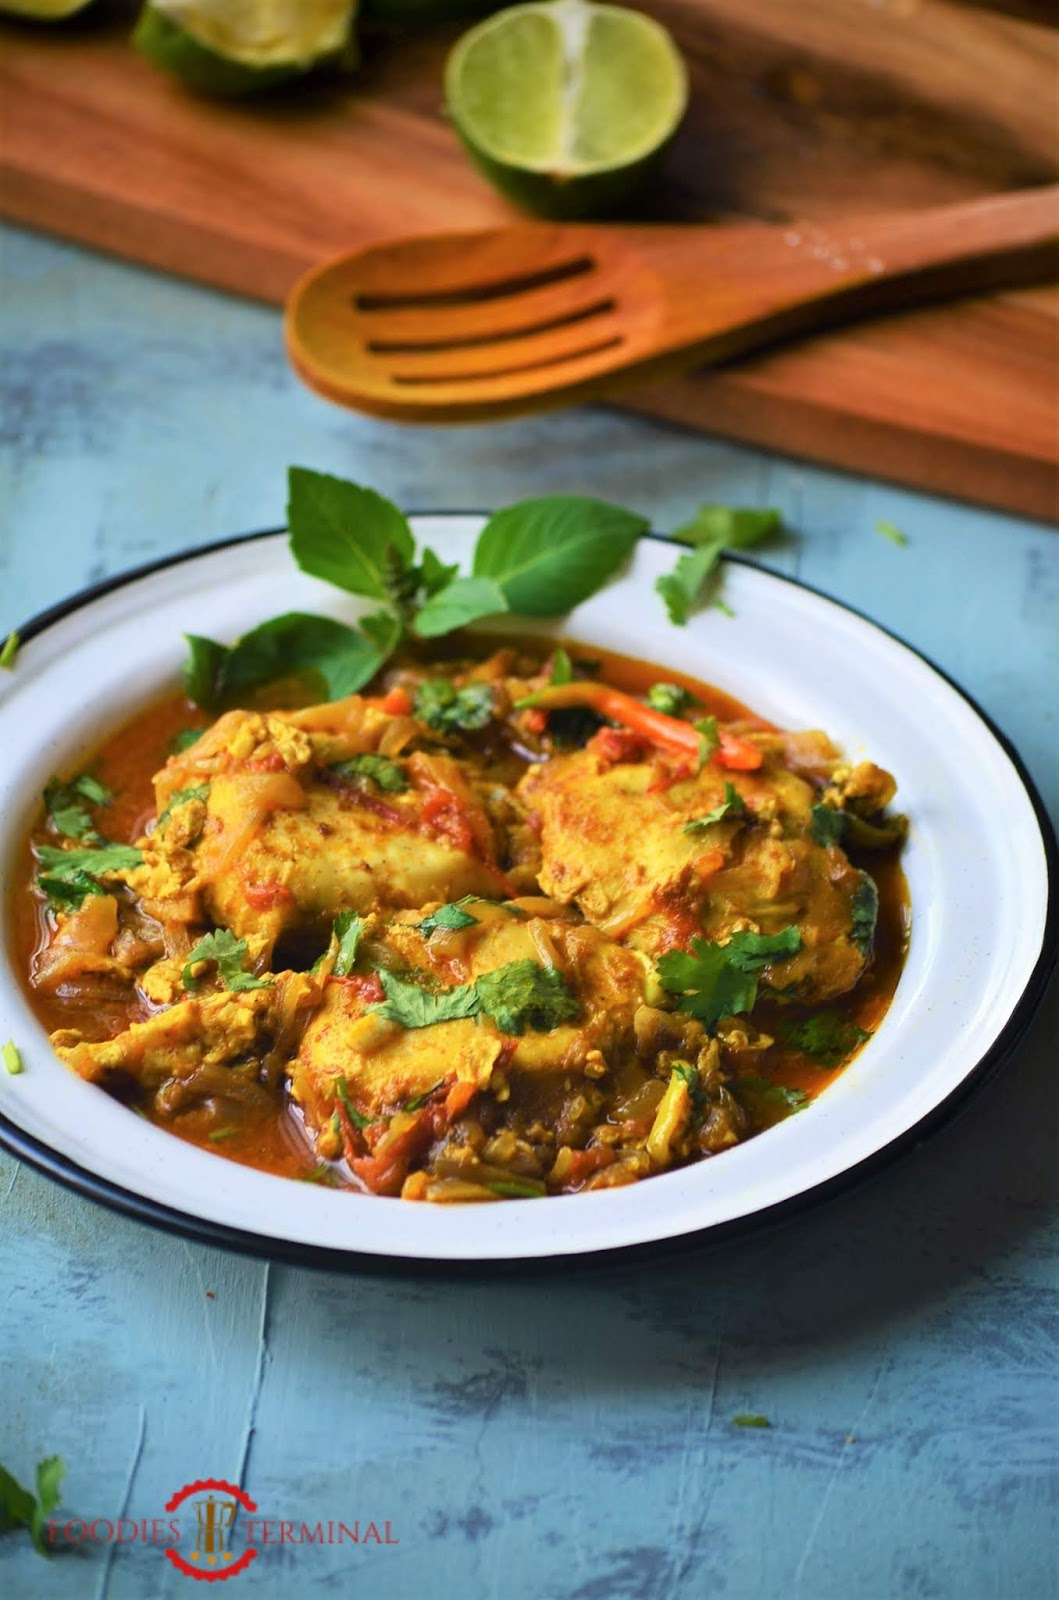 Poached egg curry recipe under 30 mins, indian egg curry, egg curry recipe, egg recipe, how to make egg curry, indian recipe, international cuisine, quick and easy egg curry recipe, how to make poached egg curry recipe, recipes under 30 mins, egg masala recipe.